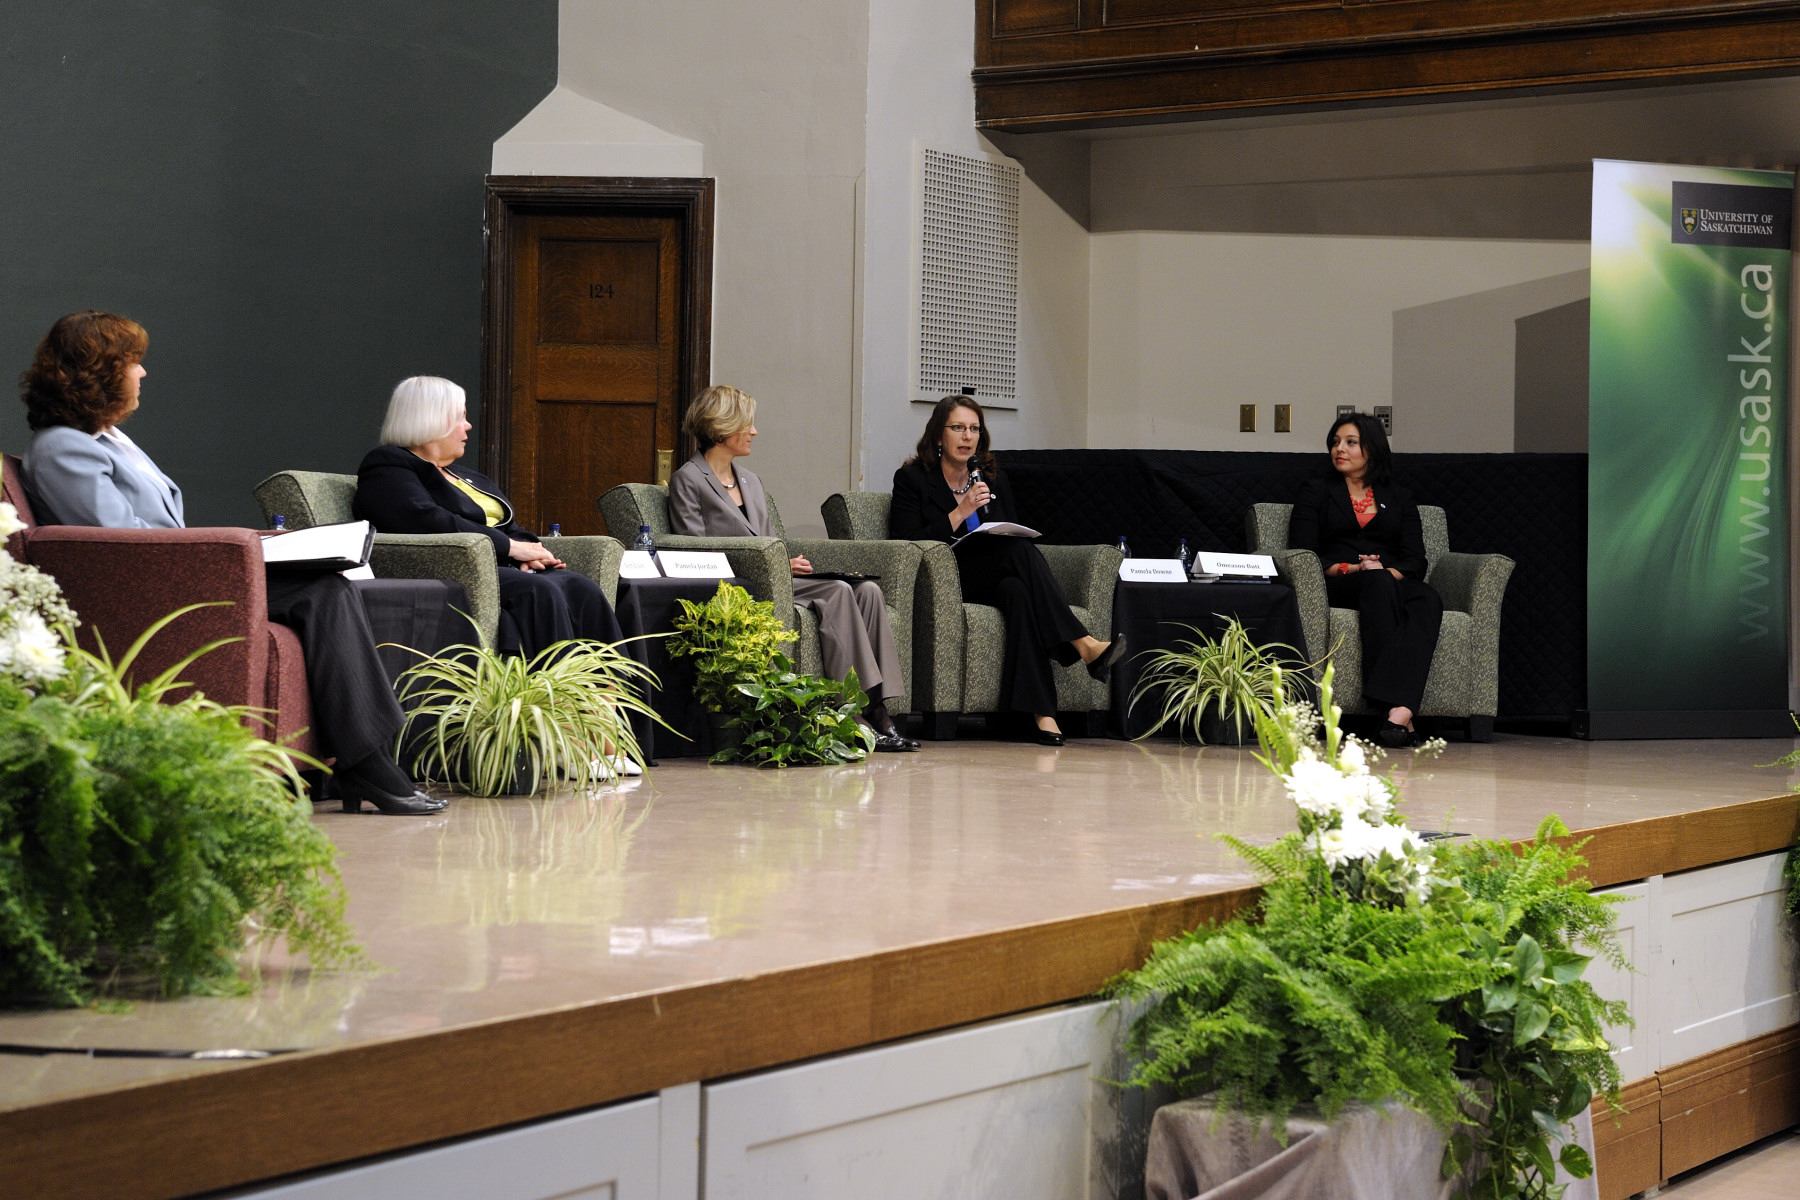 "Following the visit at the Canadian Light Source (CLS), the Governor General participated in a discussion marking the 50th anniversary of the Canadian Bill of Rights. The theme of the discussion was ""Women's Rights are Human Rights"" and was held at the University of Saskatchewan."